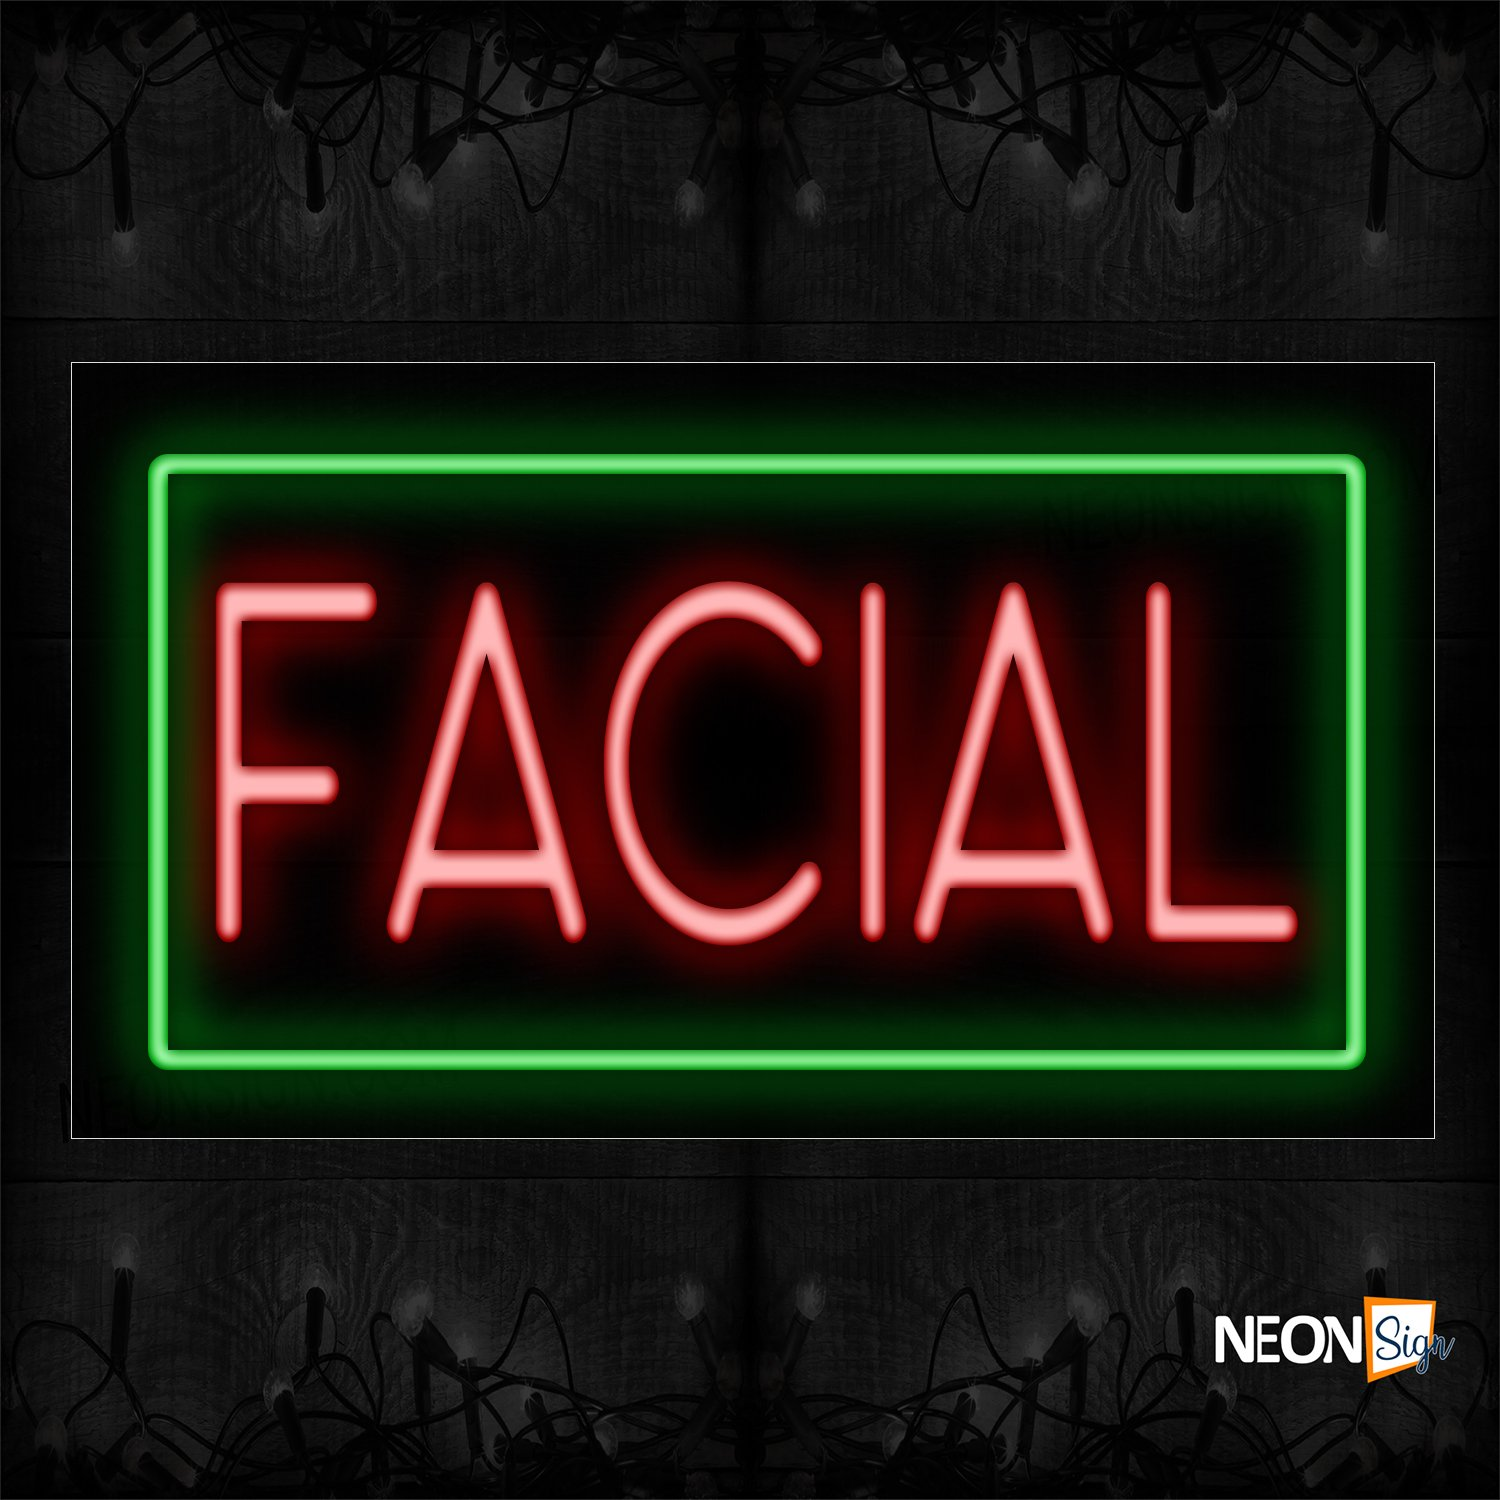 Image of 11073 Facial In Red With Green Border Neon Signs_20x37 Black Backing